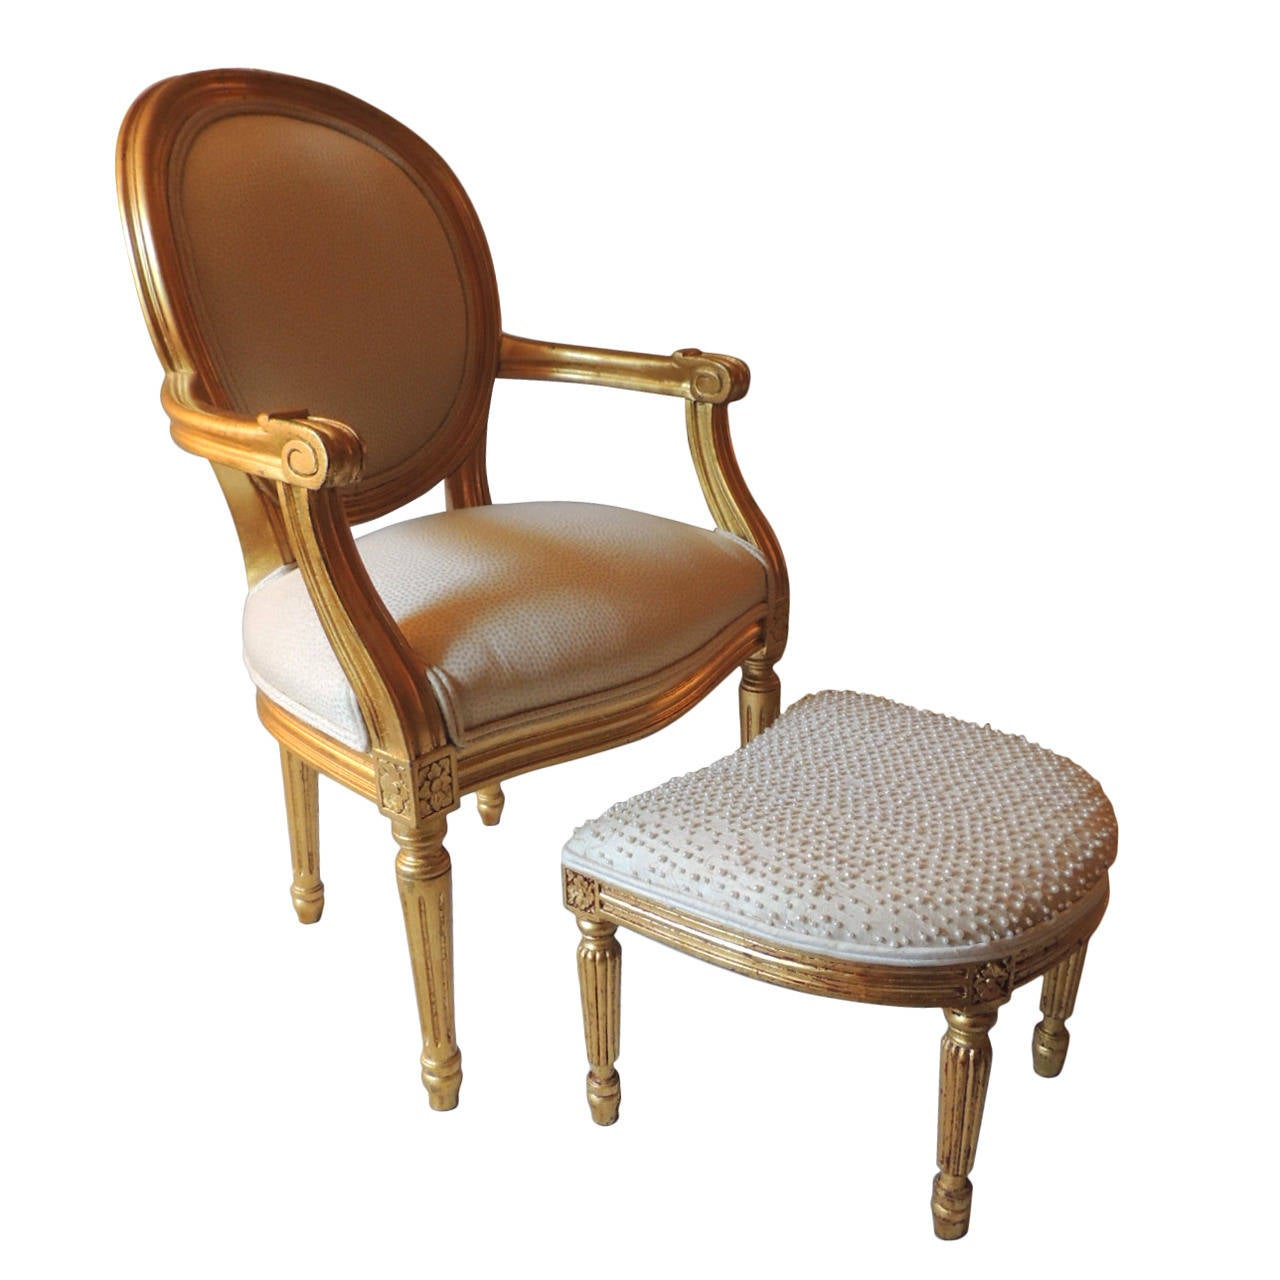 Petite Child Size French Bergere Chair With Ottoman At 1stdibs